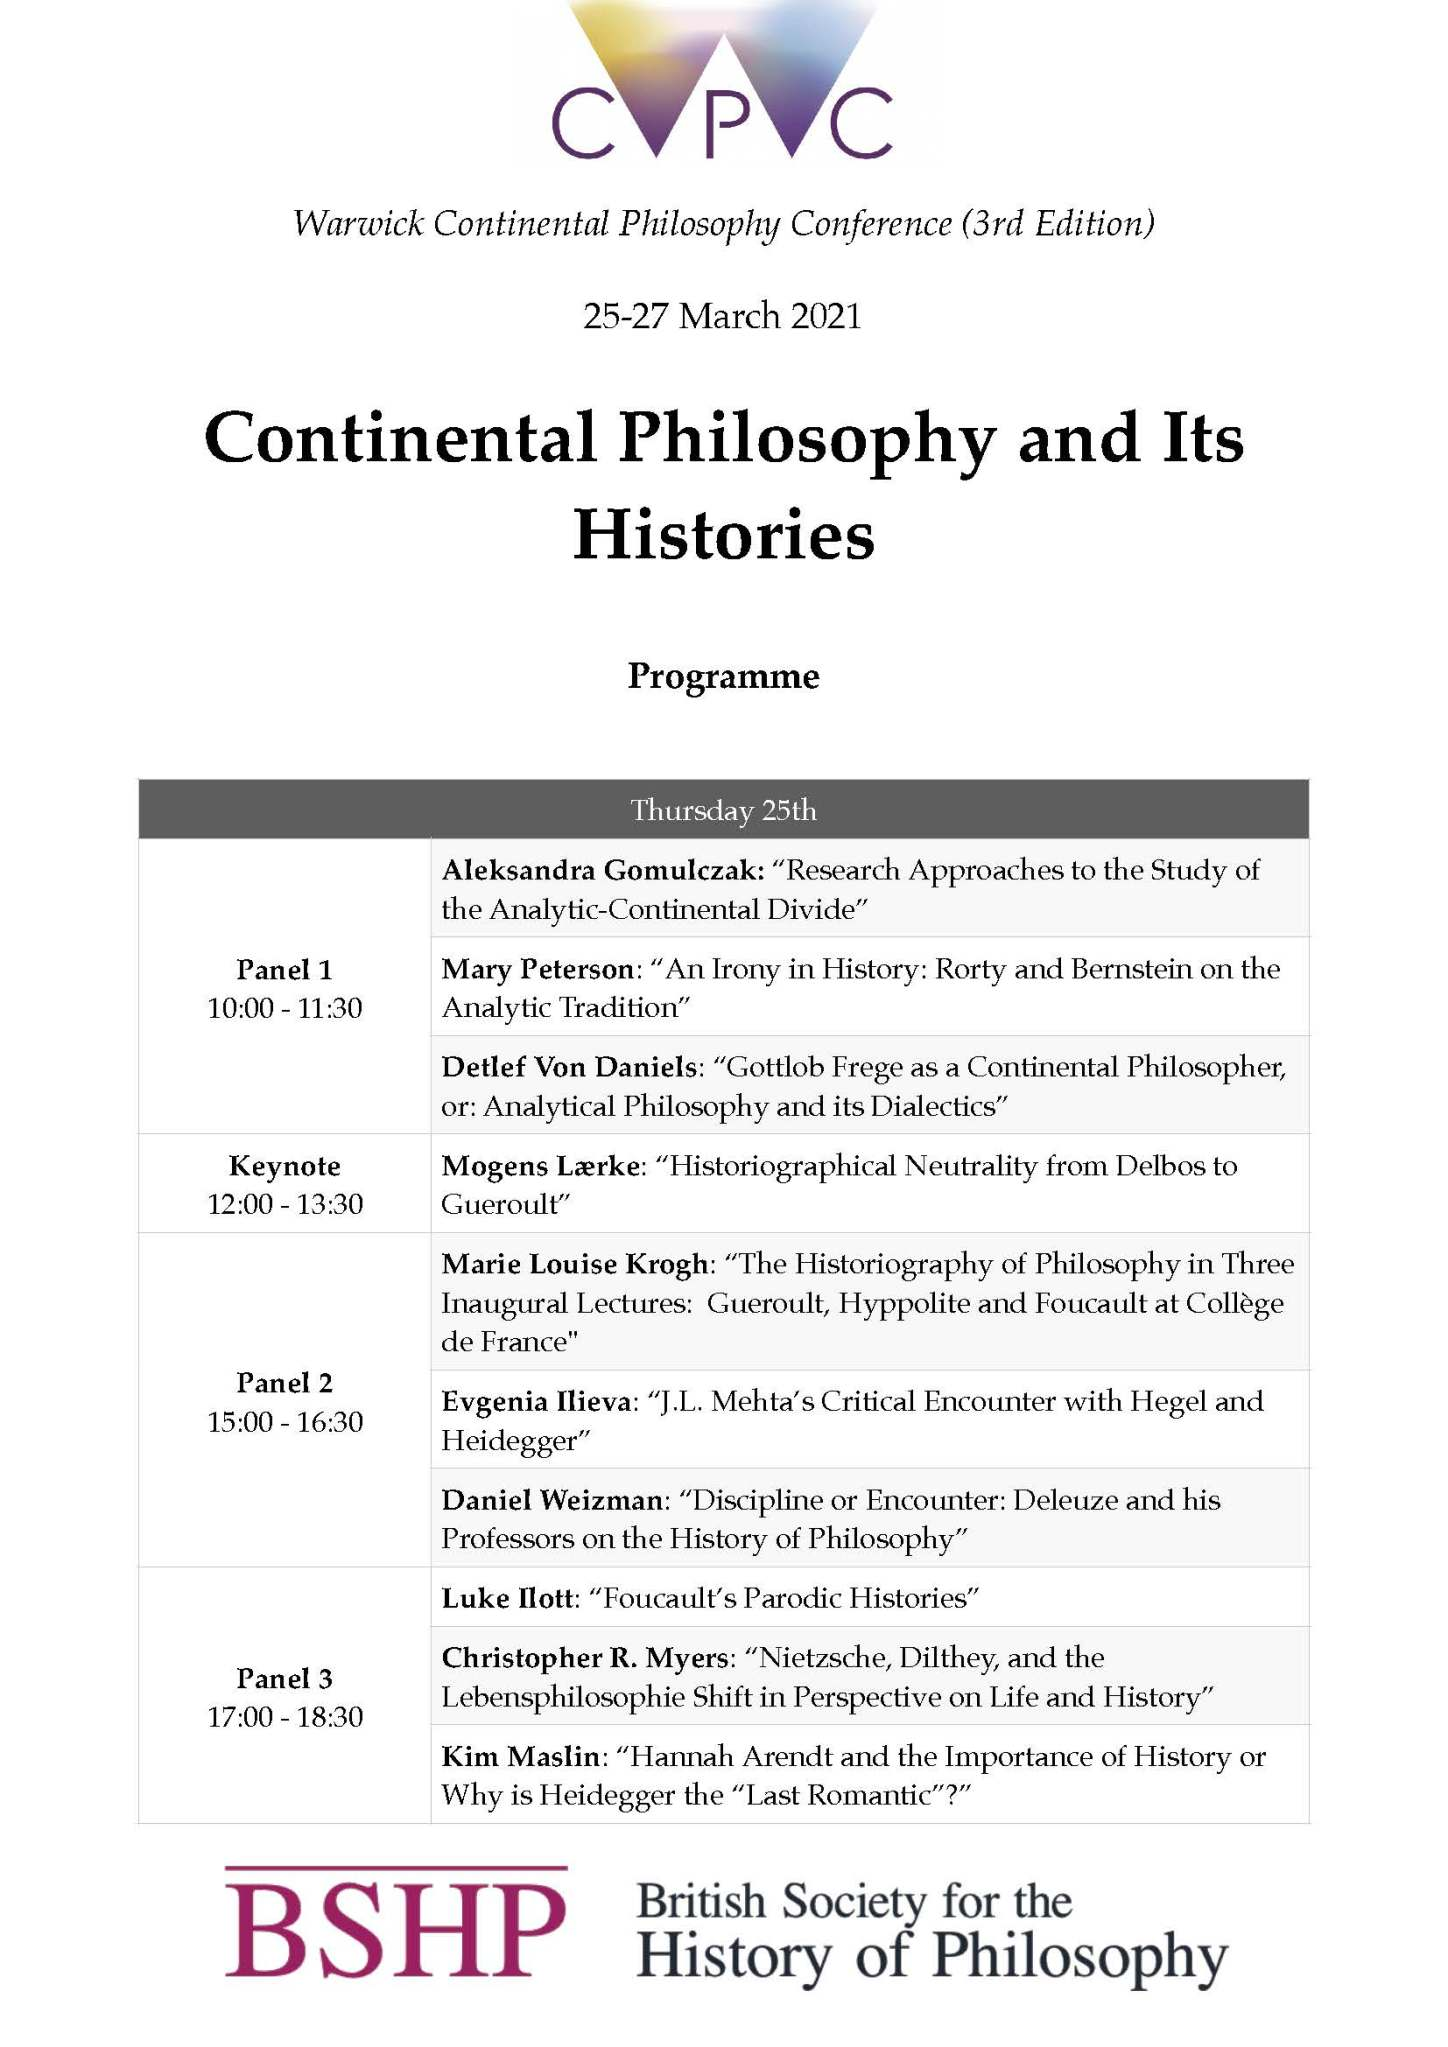 Warwick Continental Philosophy Conference. Online event (2020/21}